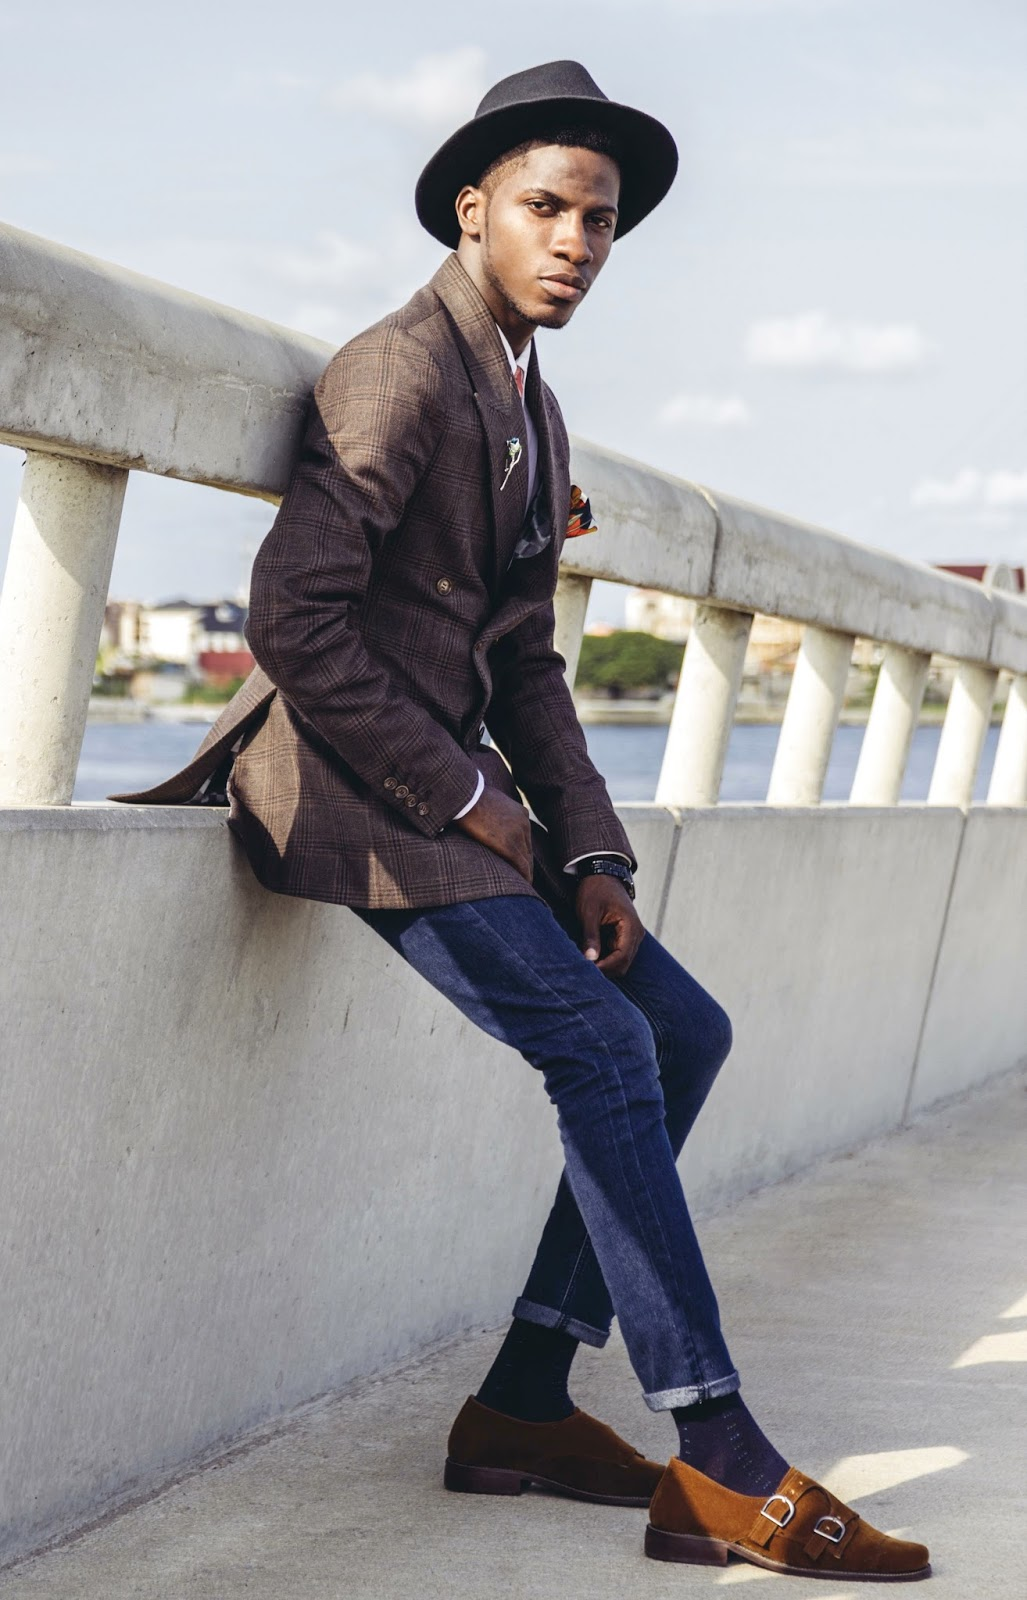 2016 Nigerian Men Fashion Magazine Things The Most Stylish Guys Know